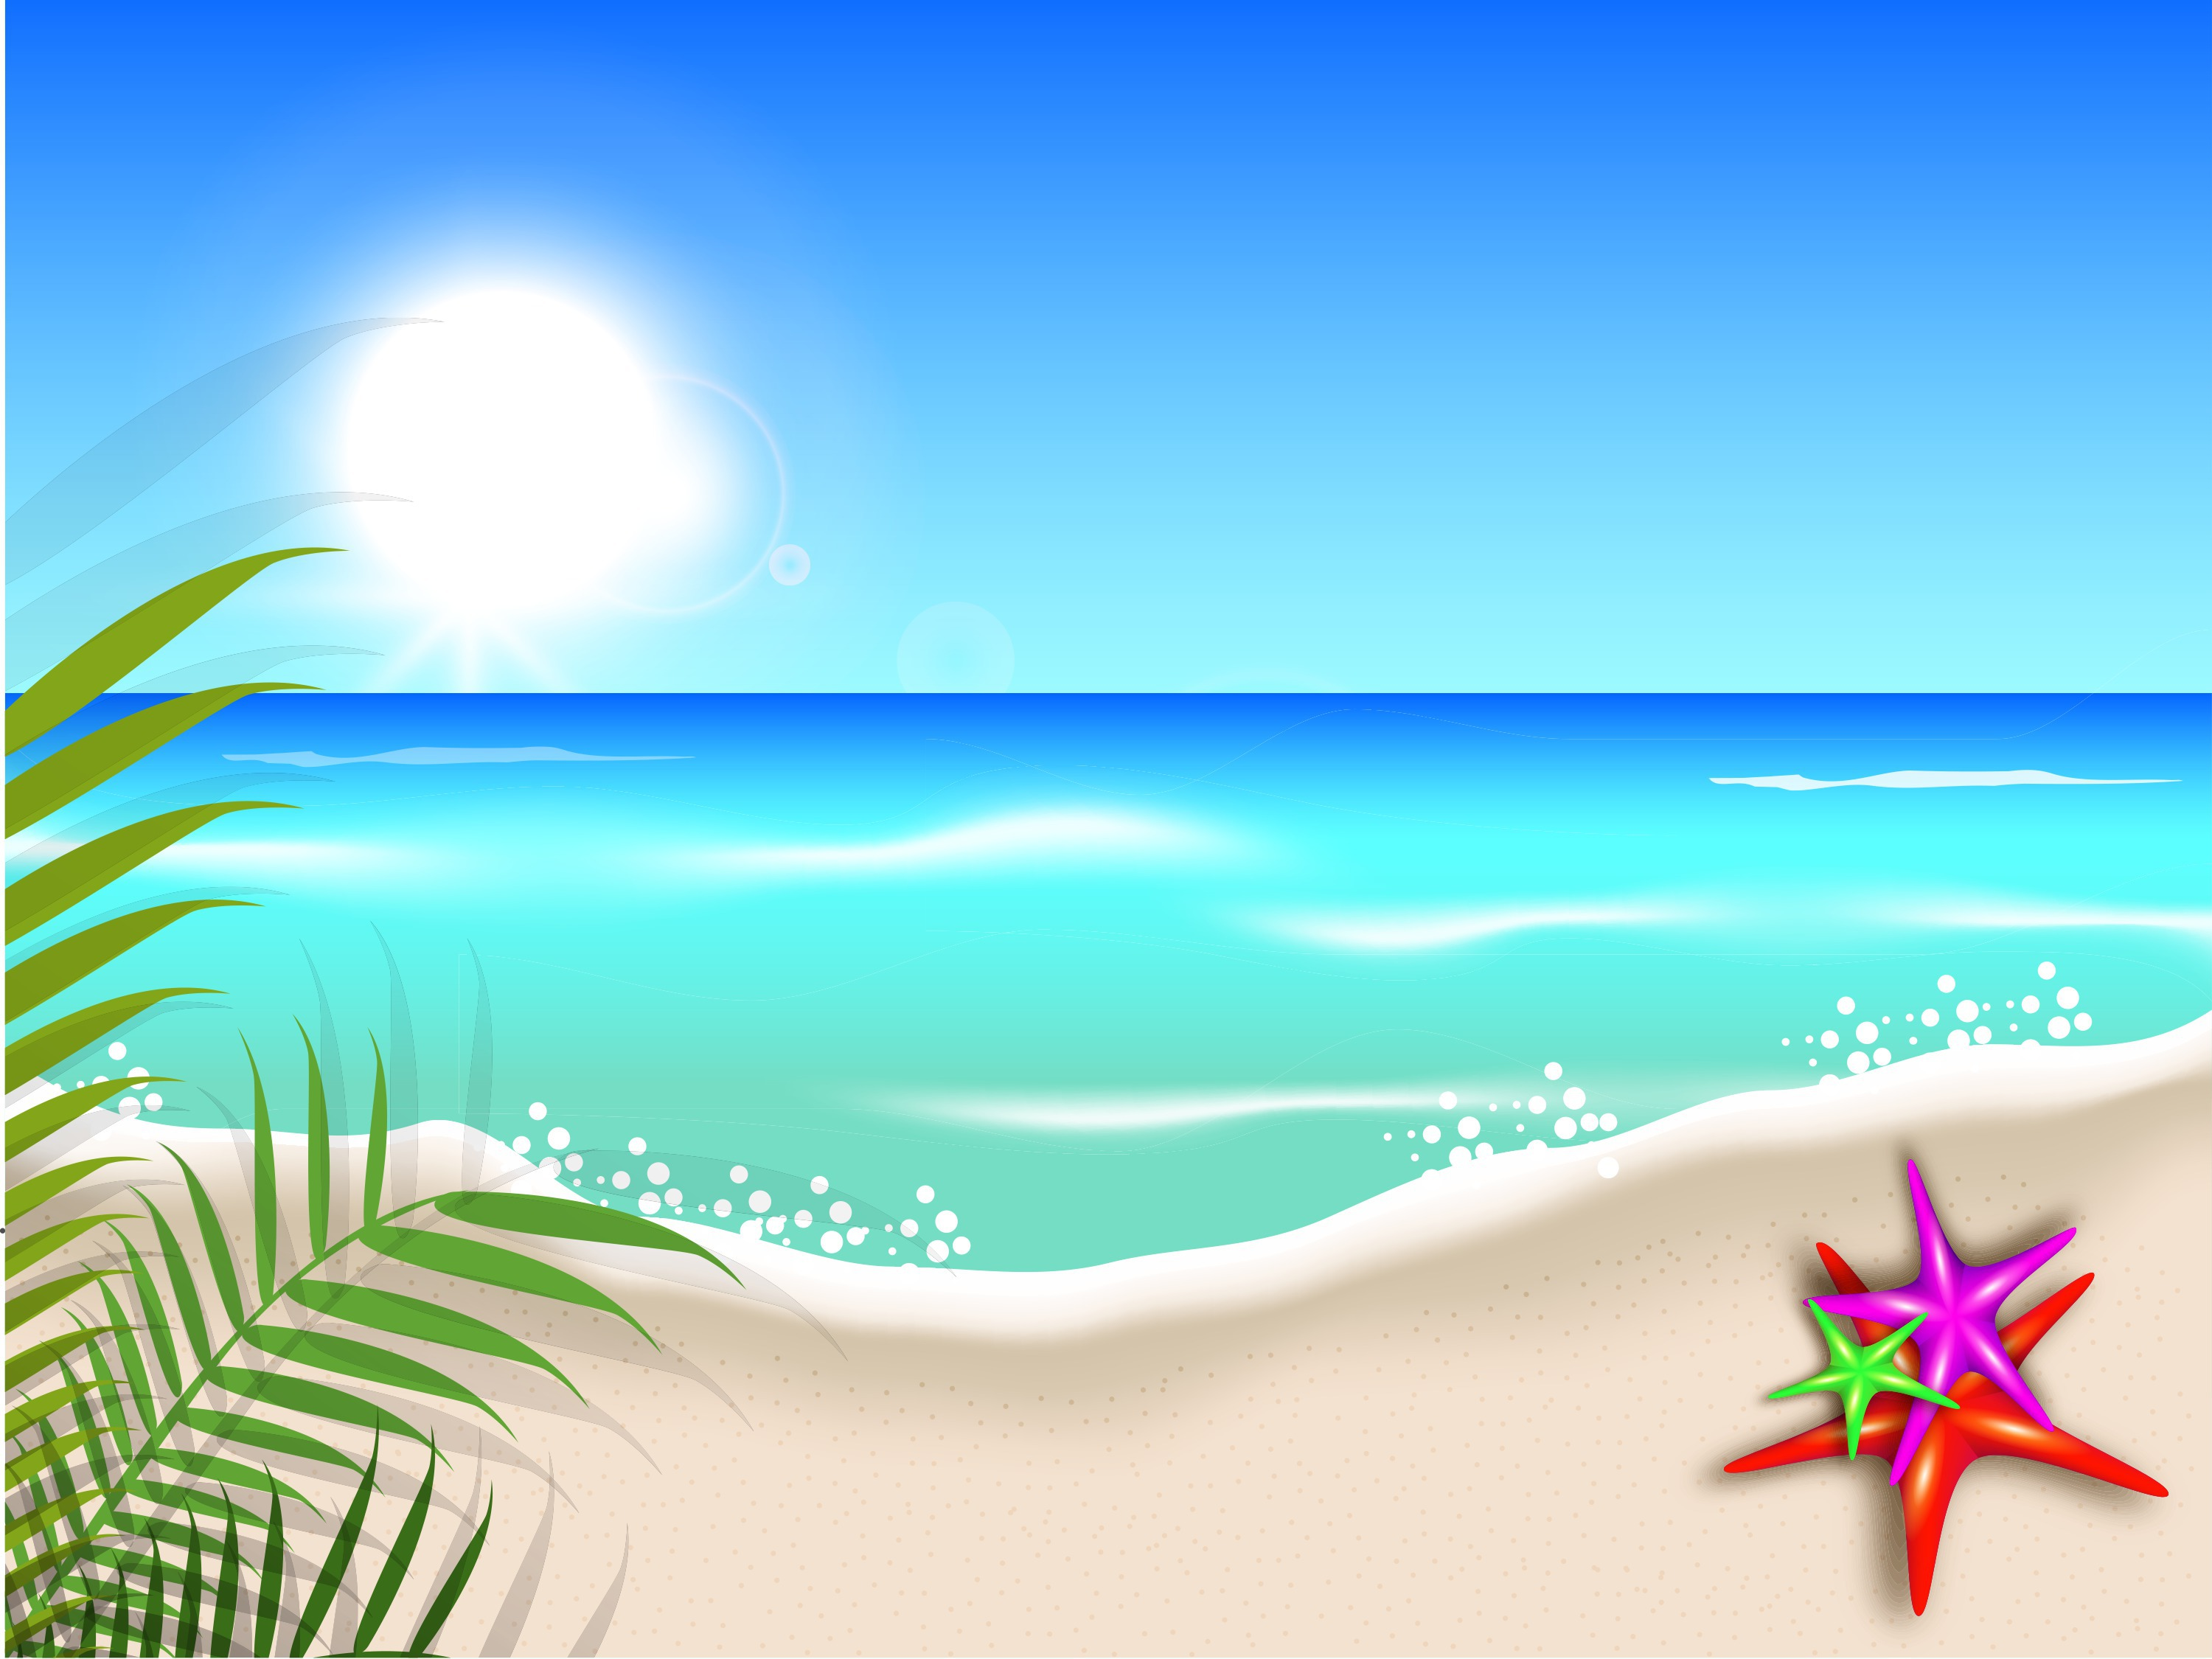 Summer is bliss – Warm Witty Words